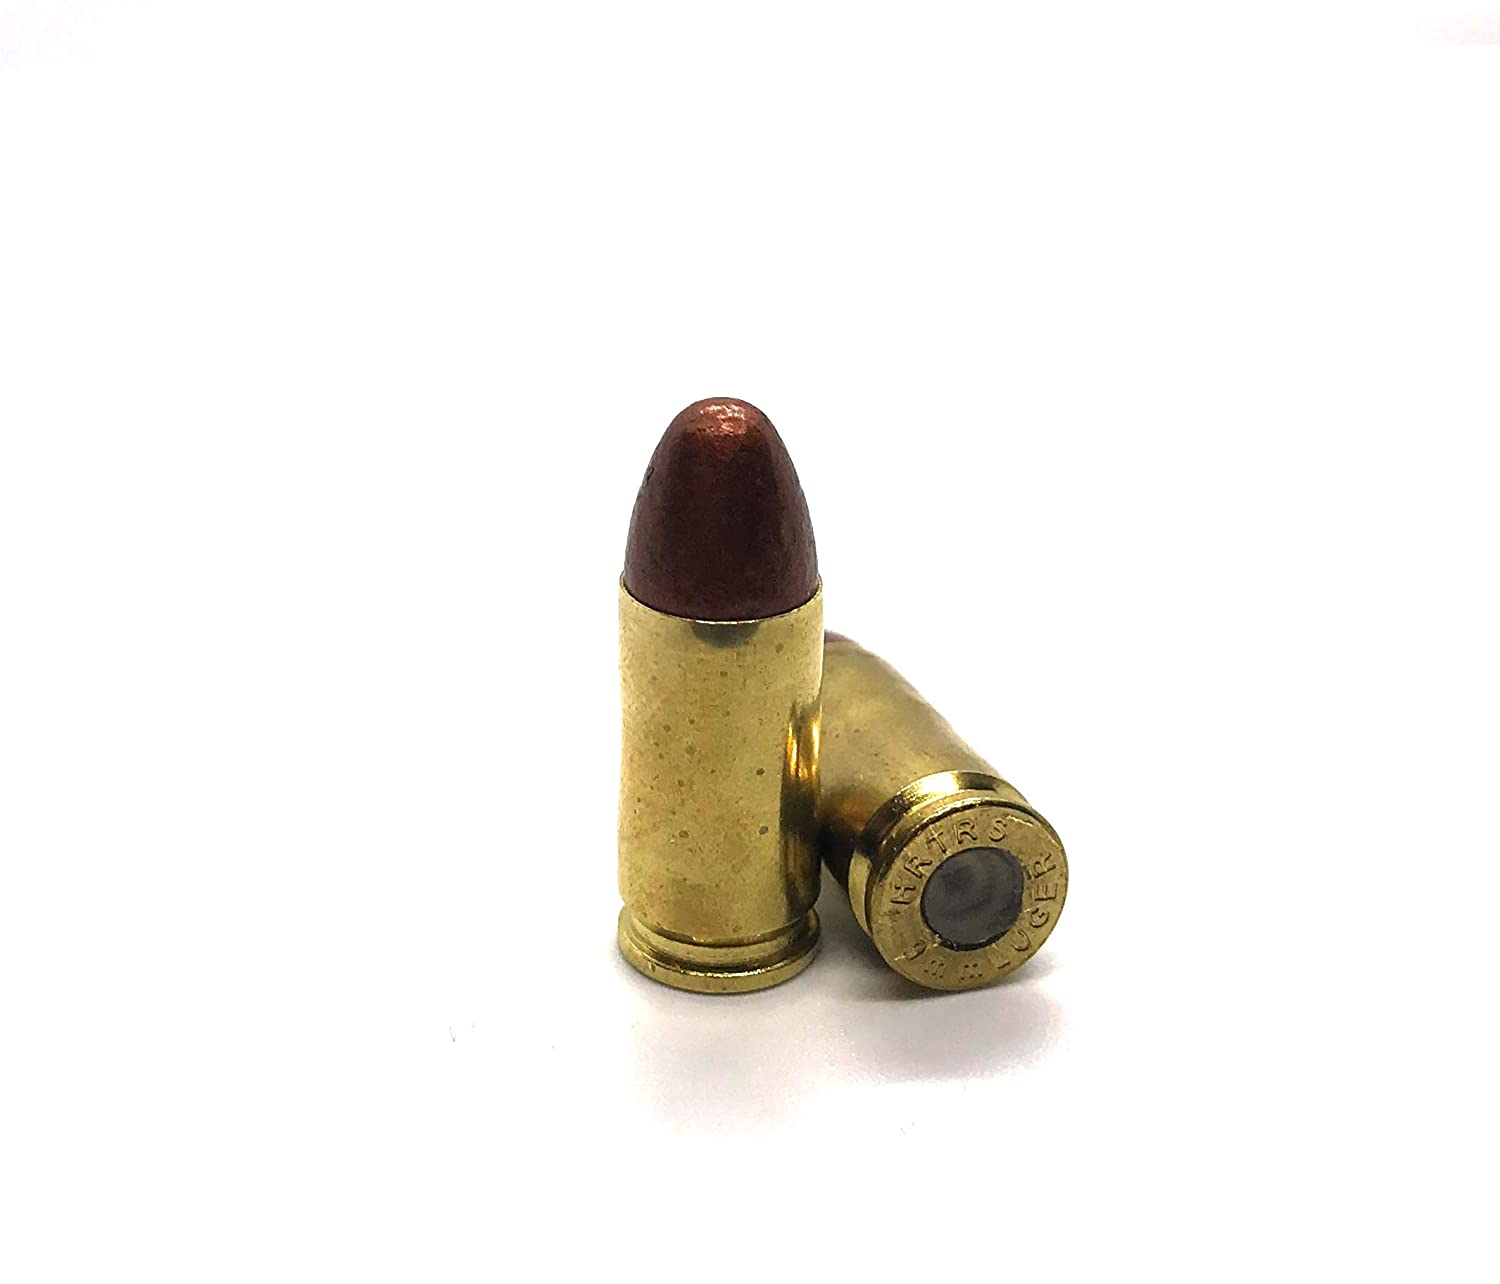 Premium Brass 9mm Snap Caps 9mm Luger Dummy Rounds (5 Pack)